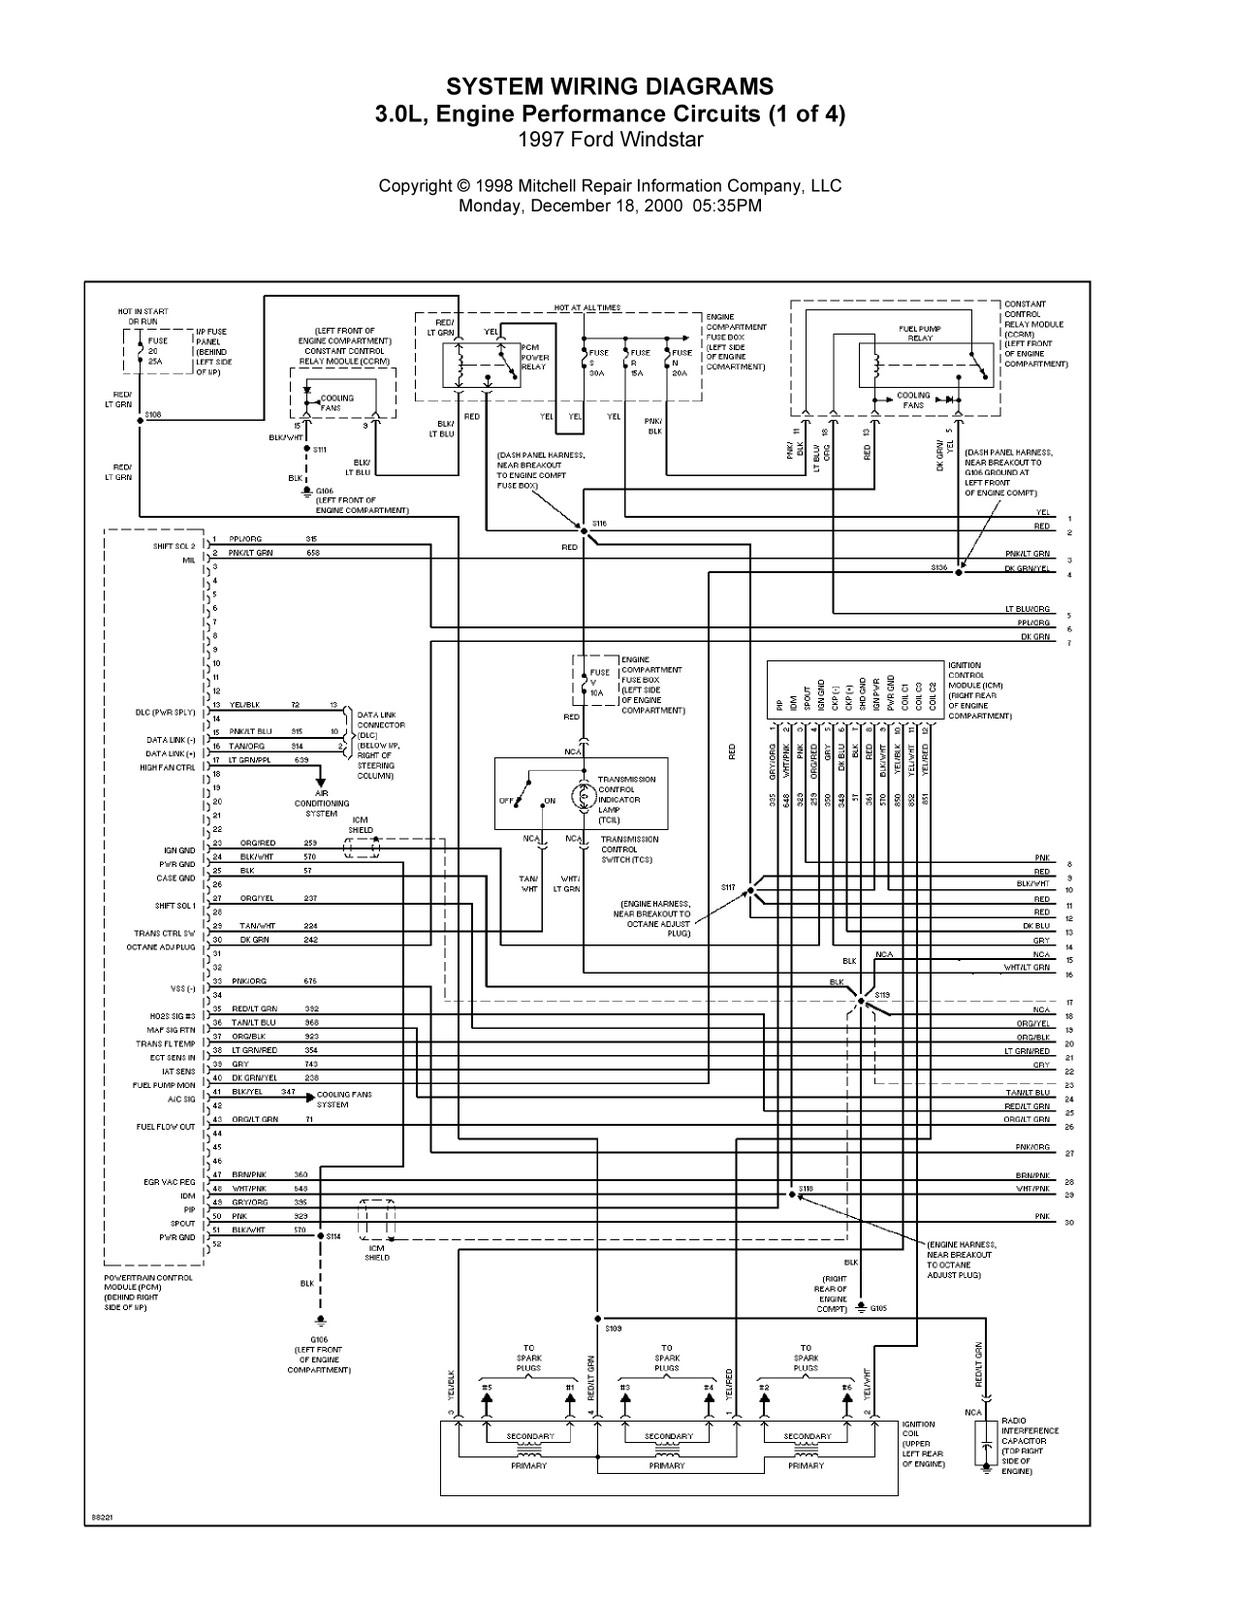 Ford Windstar Electrical Diagram Wiring Schematic 2019 For 2003 1997 Complete System Diagrams 2000